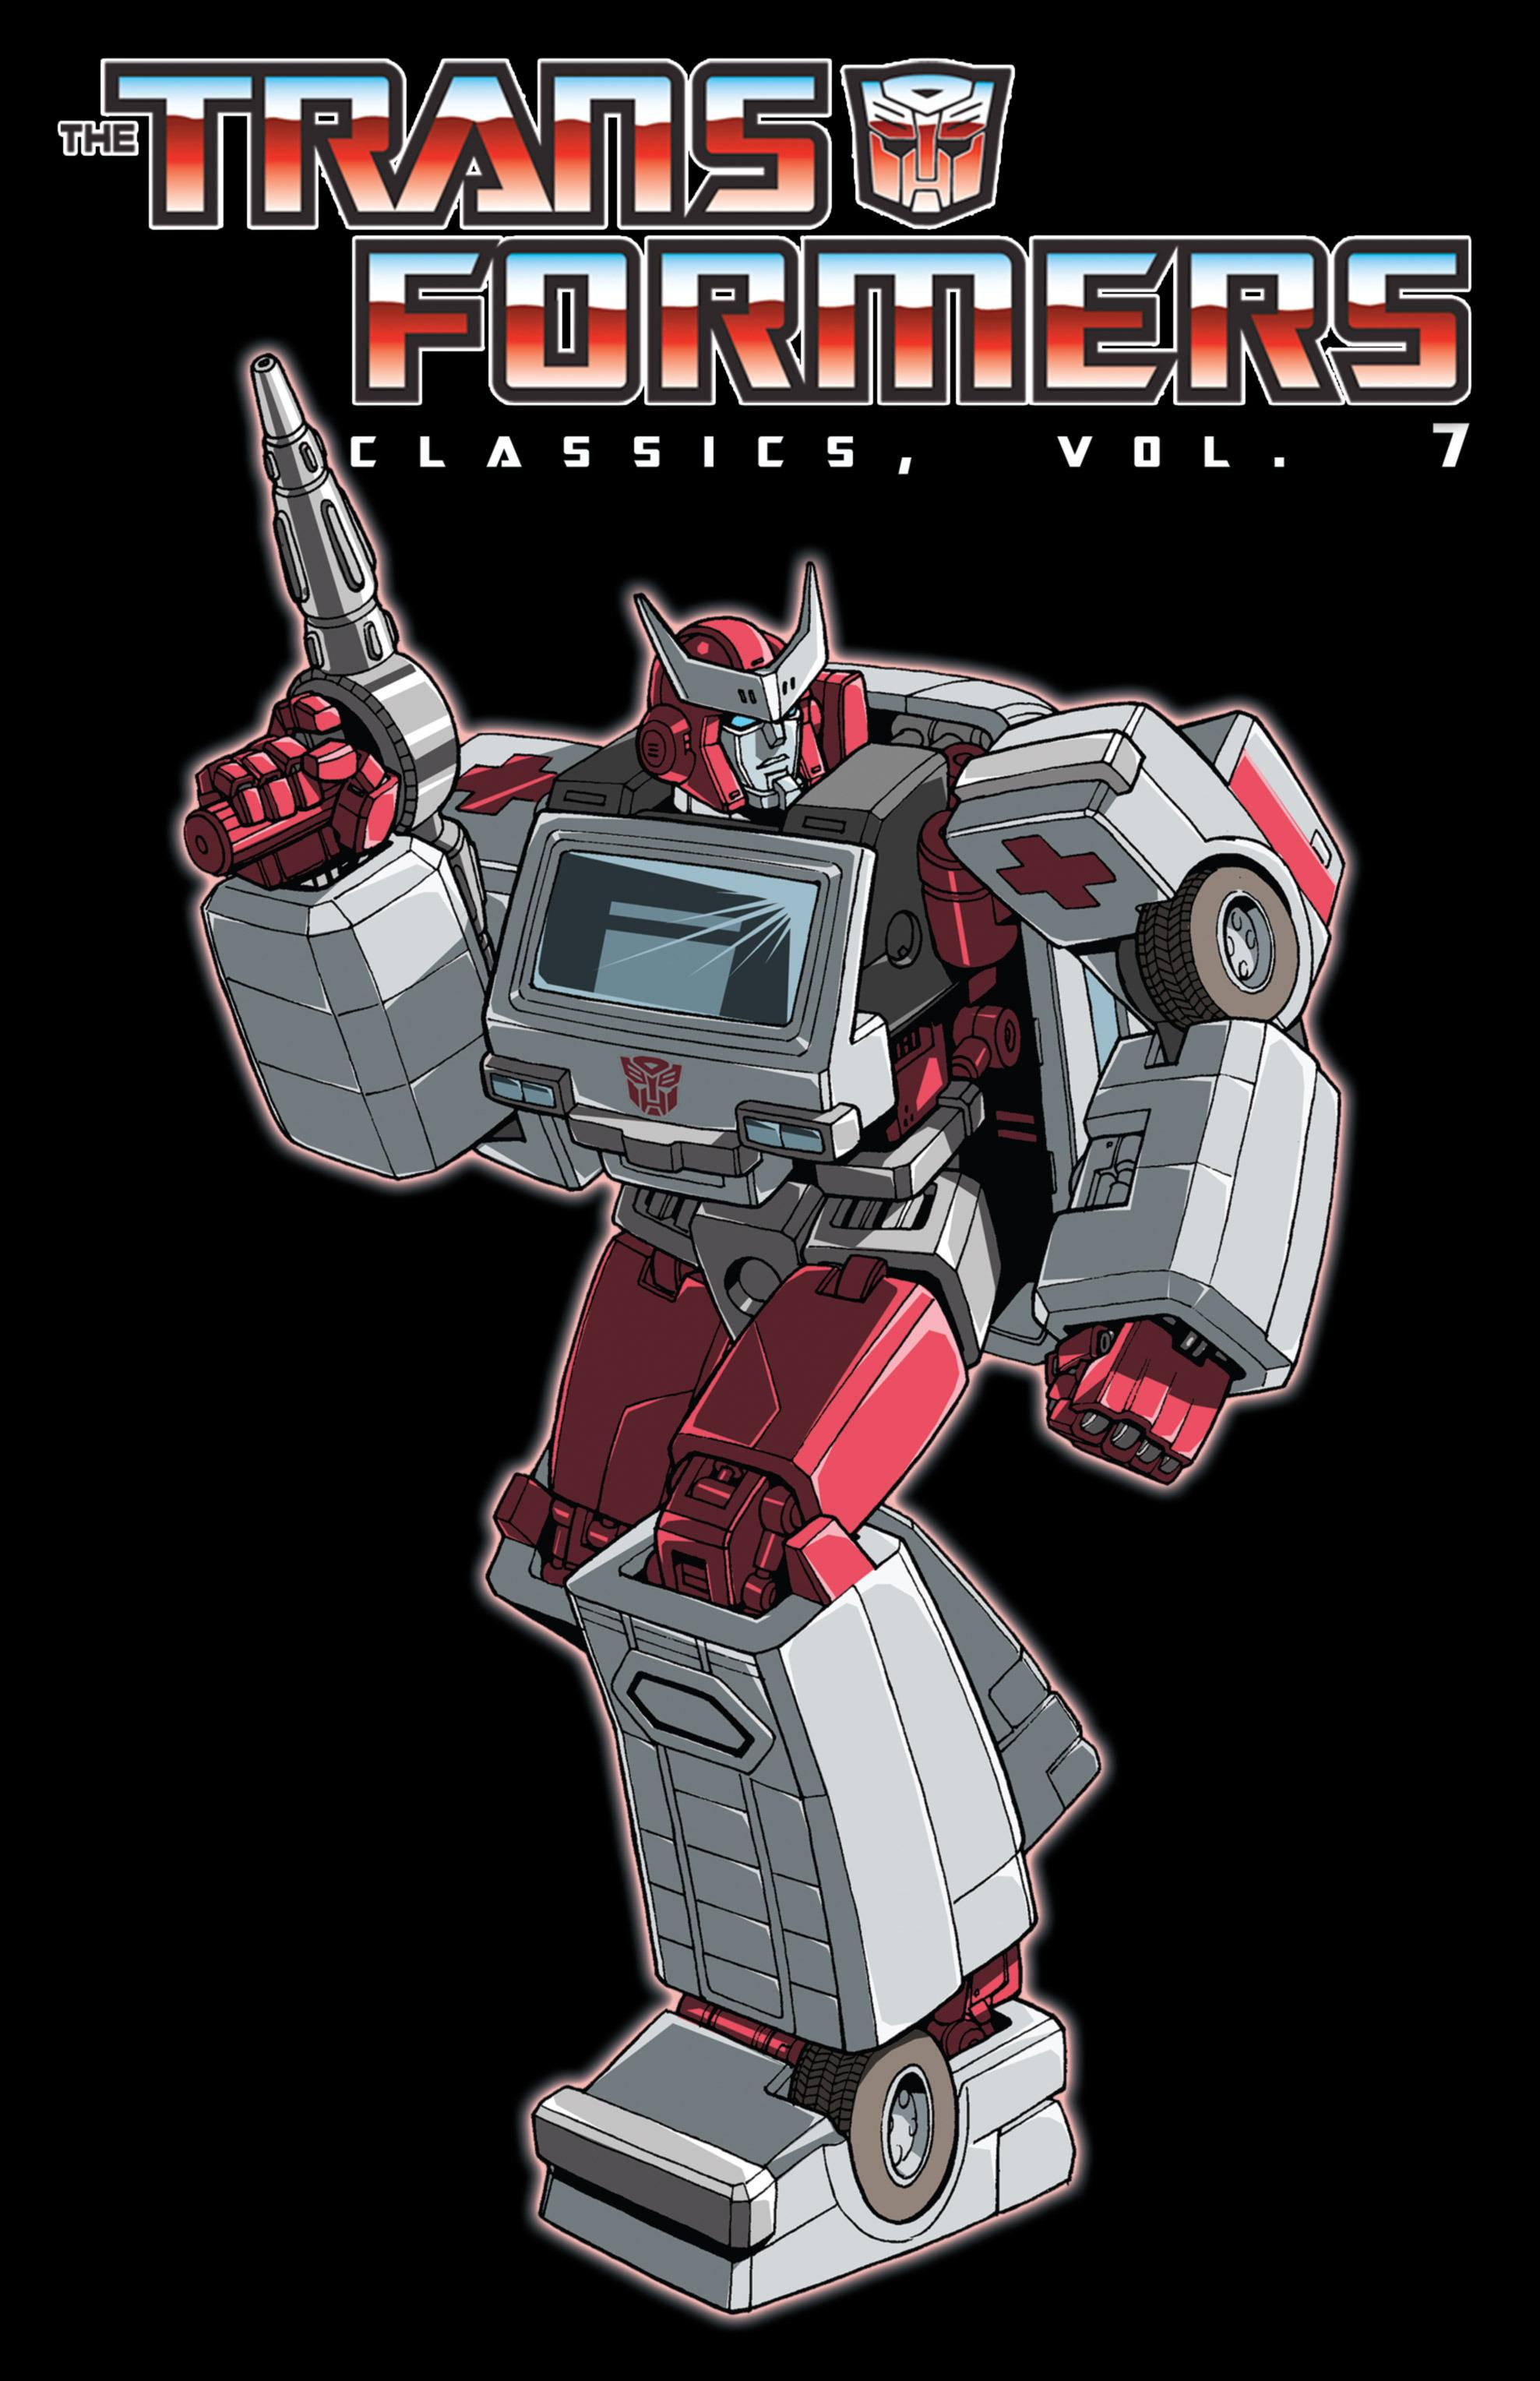 The Transformers - Classics Vol. 7 (2014) free download